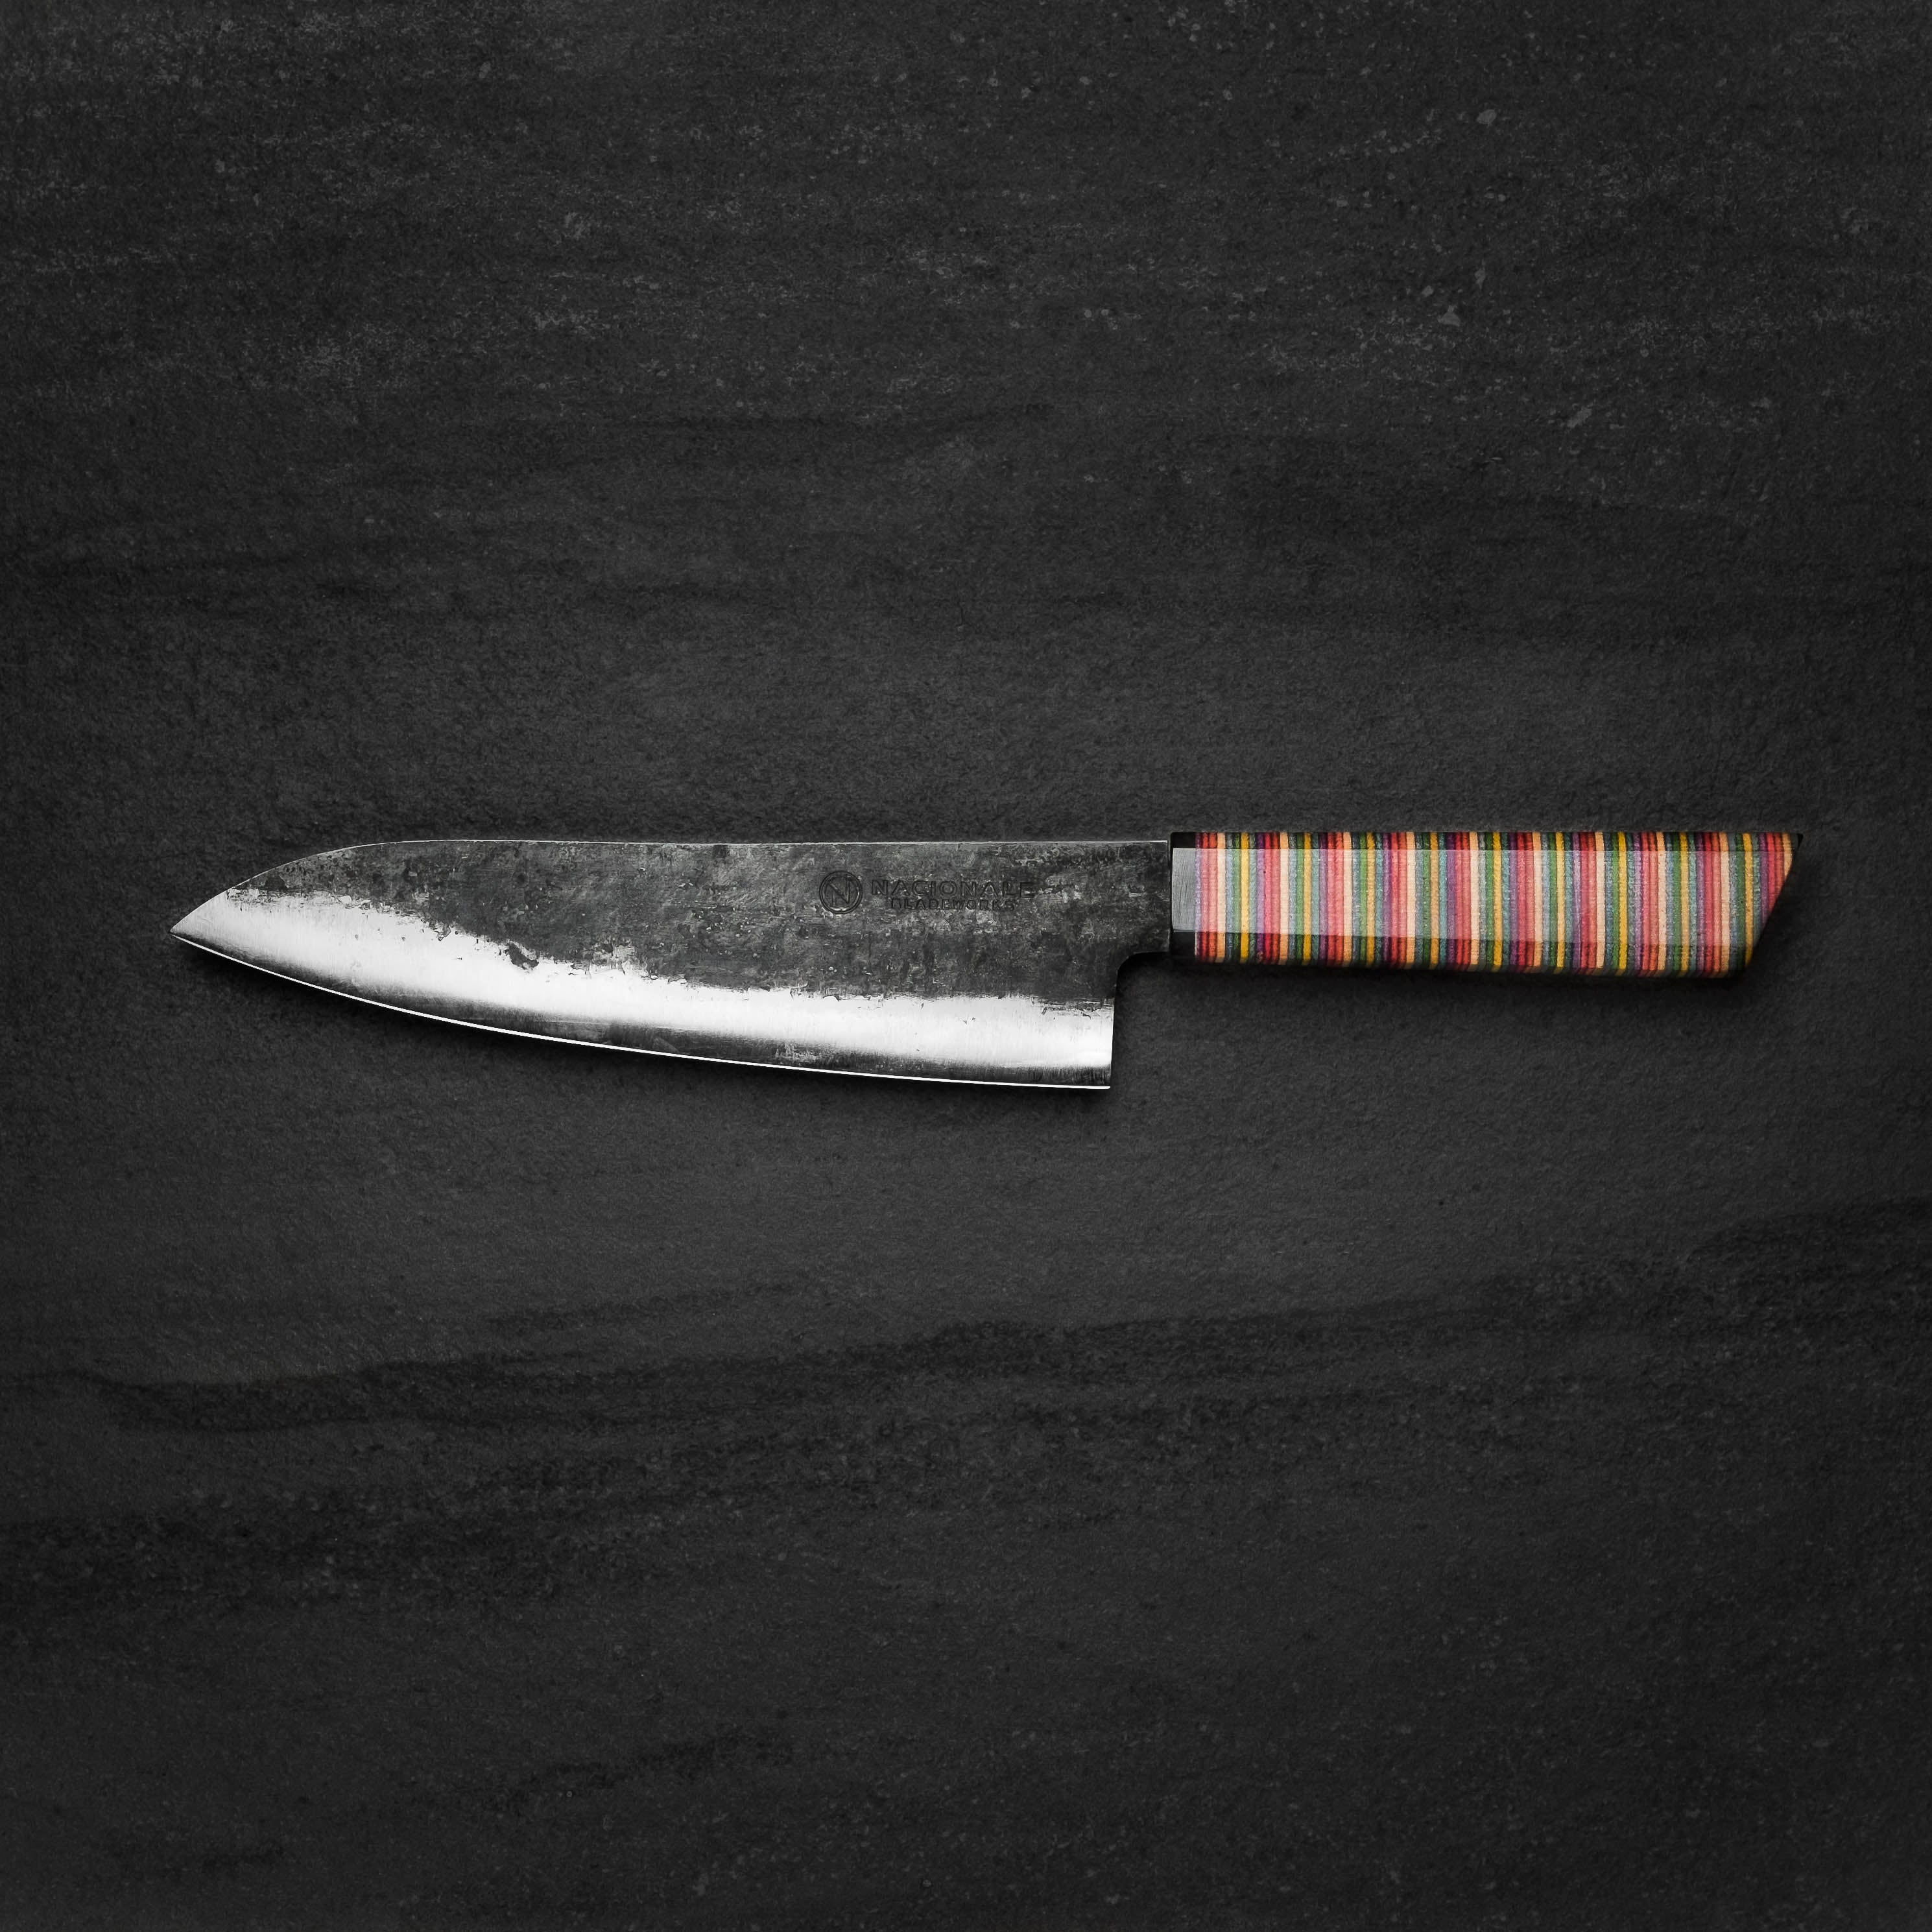 180mm Kurouchi Santoku with Skateboard Handle and Ox Horn Ferrule made by Nacionale Bladeworks.